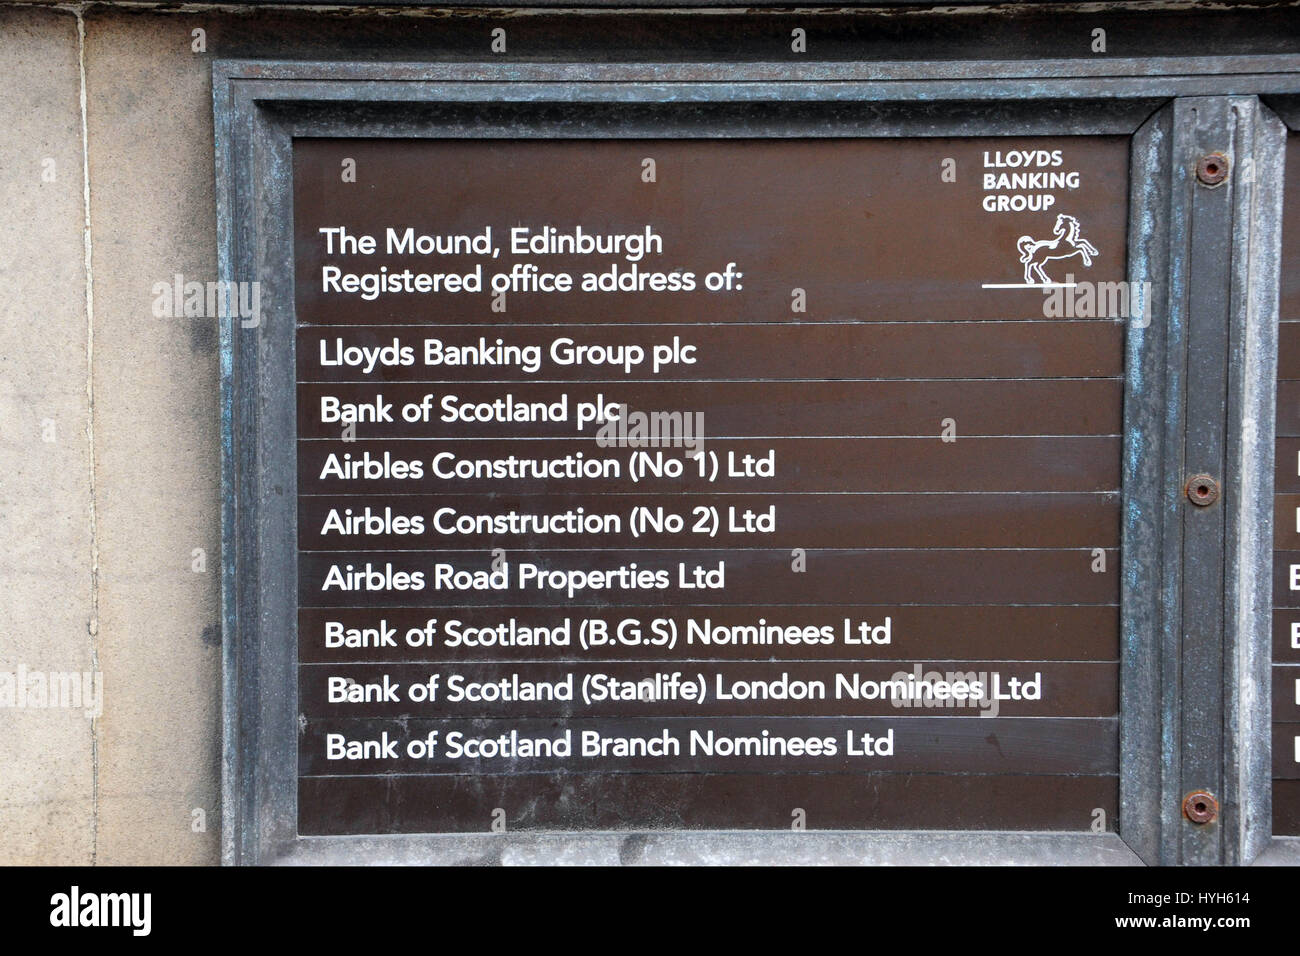 The brass plate outside the registered office of Lloyds Banking Group on The Mound in Edinburgh - Stock Image